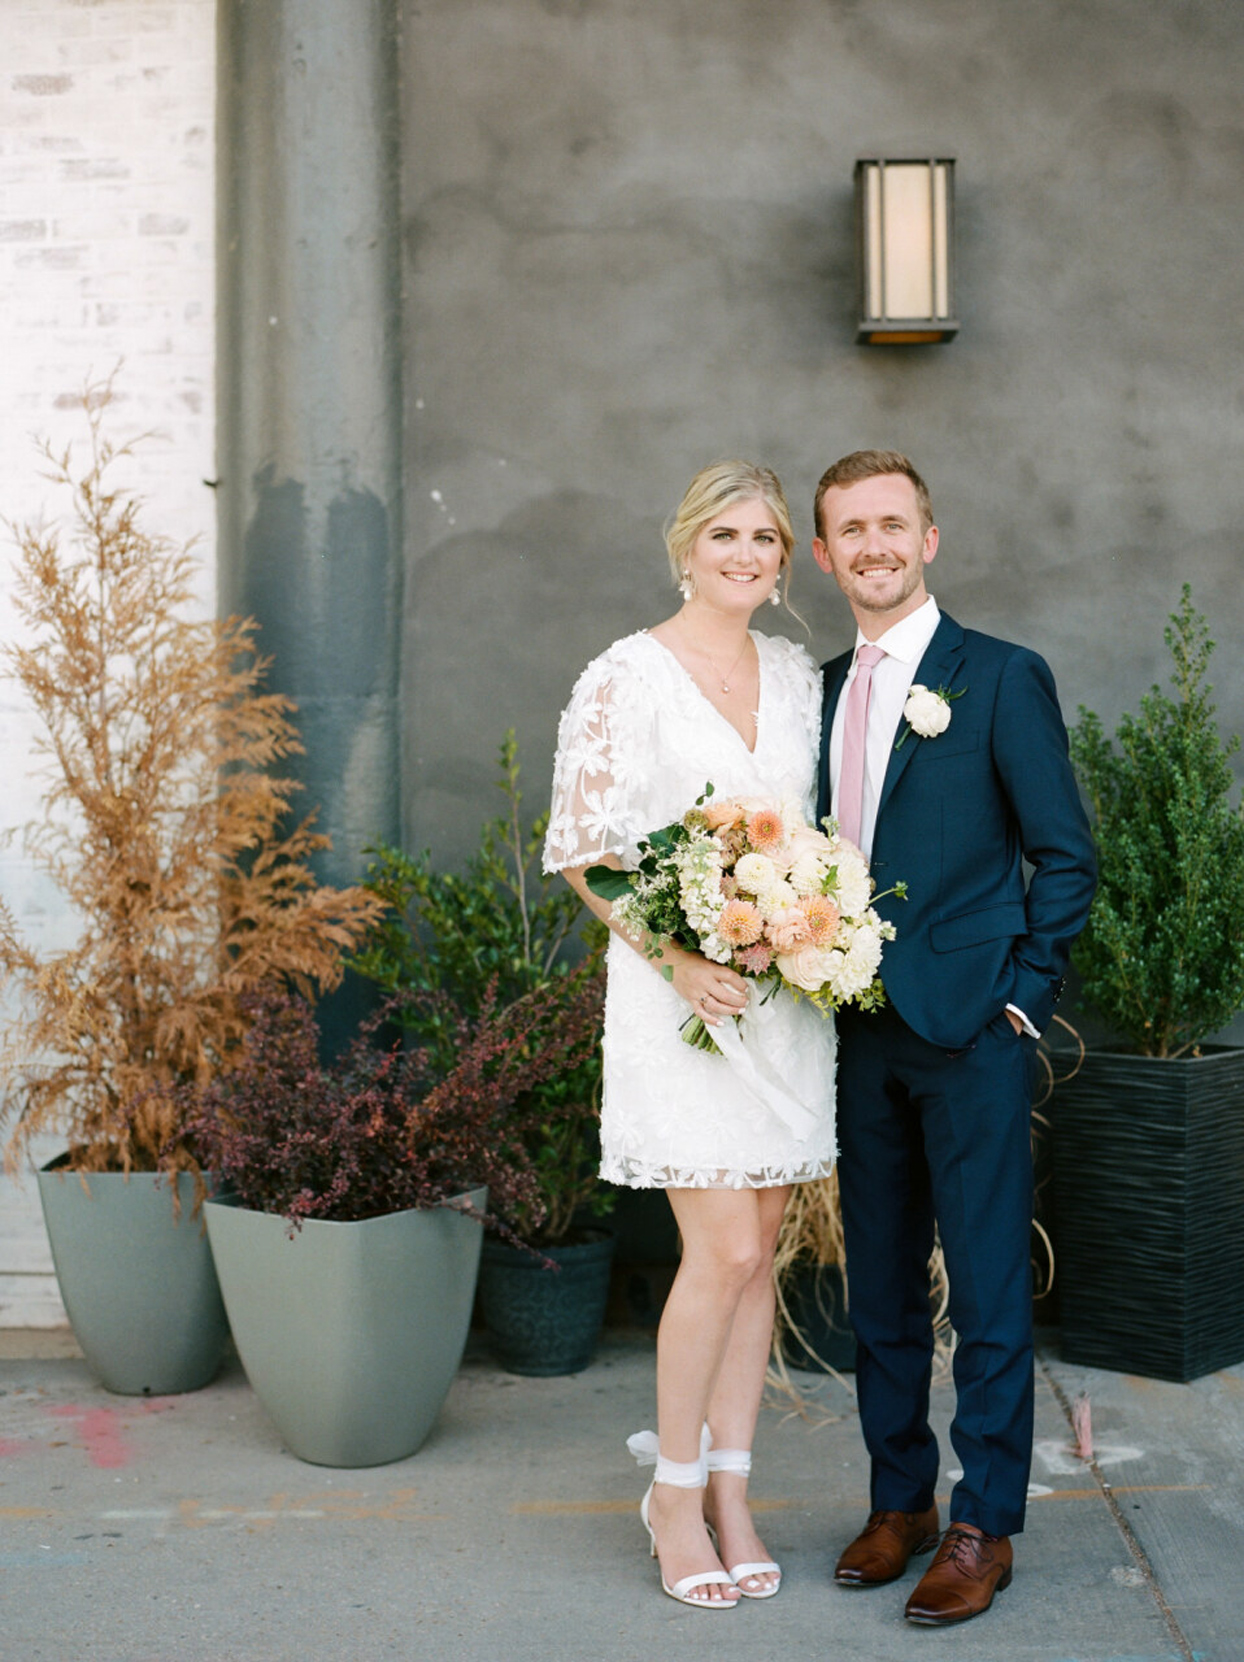 bride and groom posing by planters